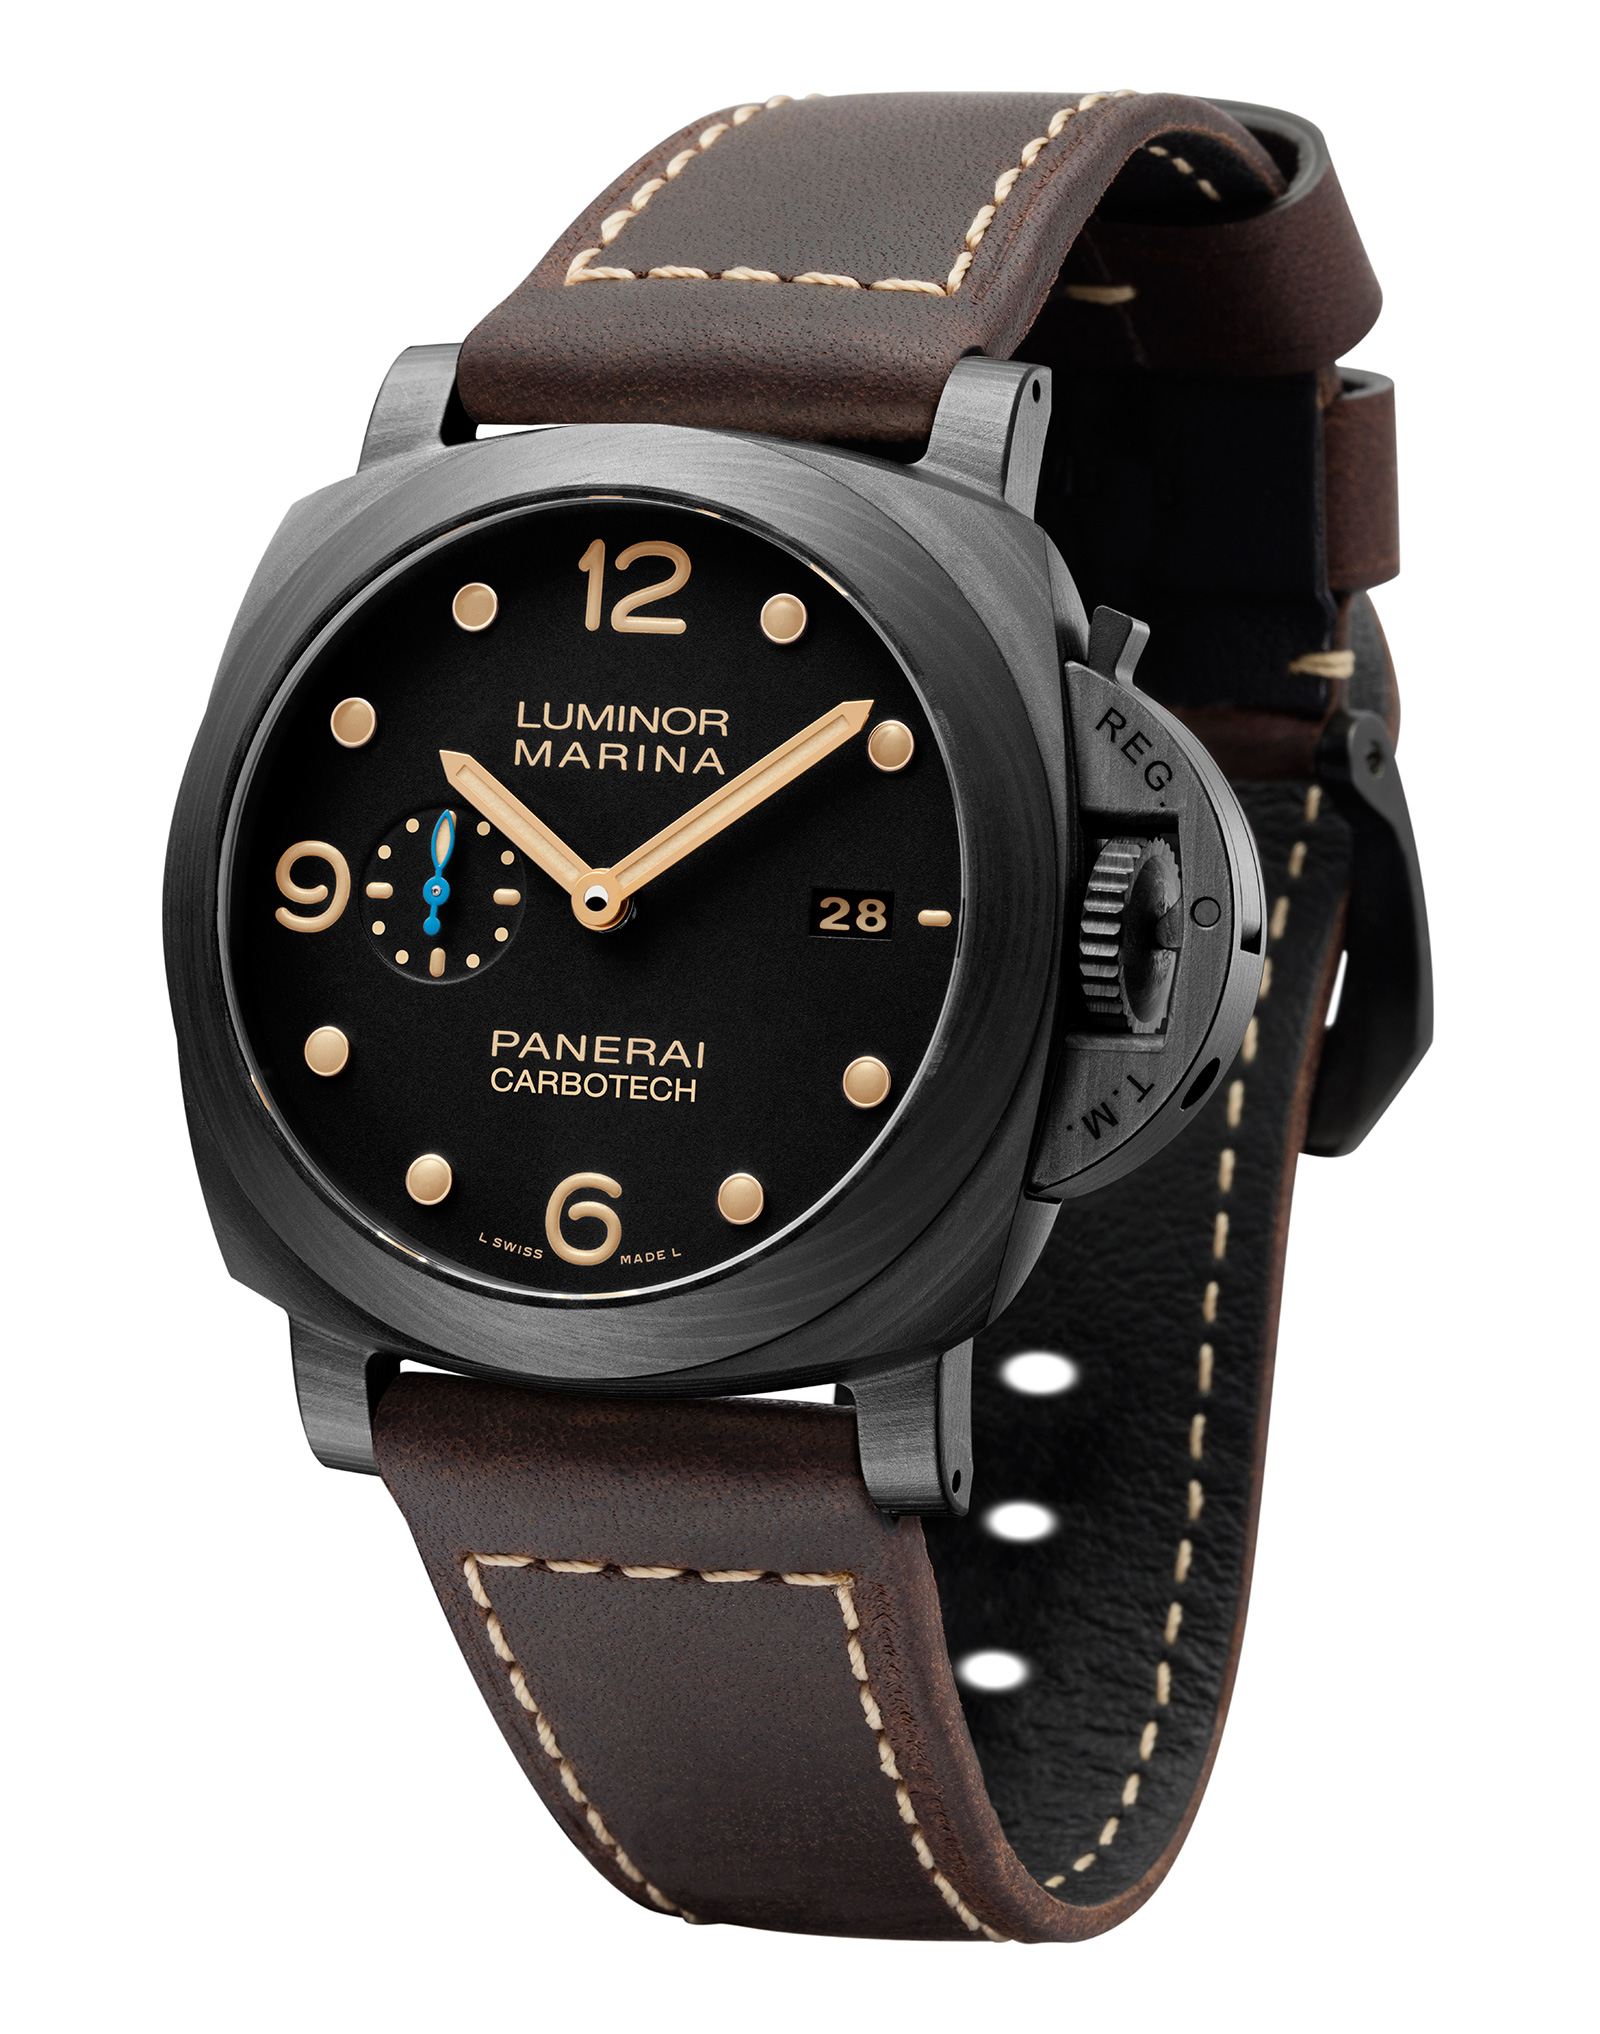 Panerai Luminor Marina 1950 Carbotech PAM661 - 3